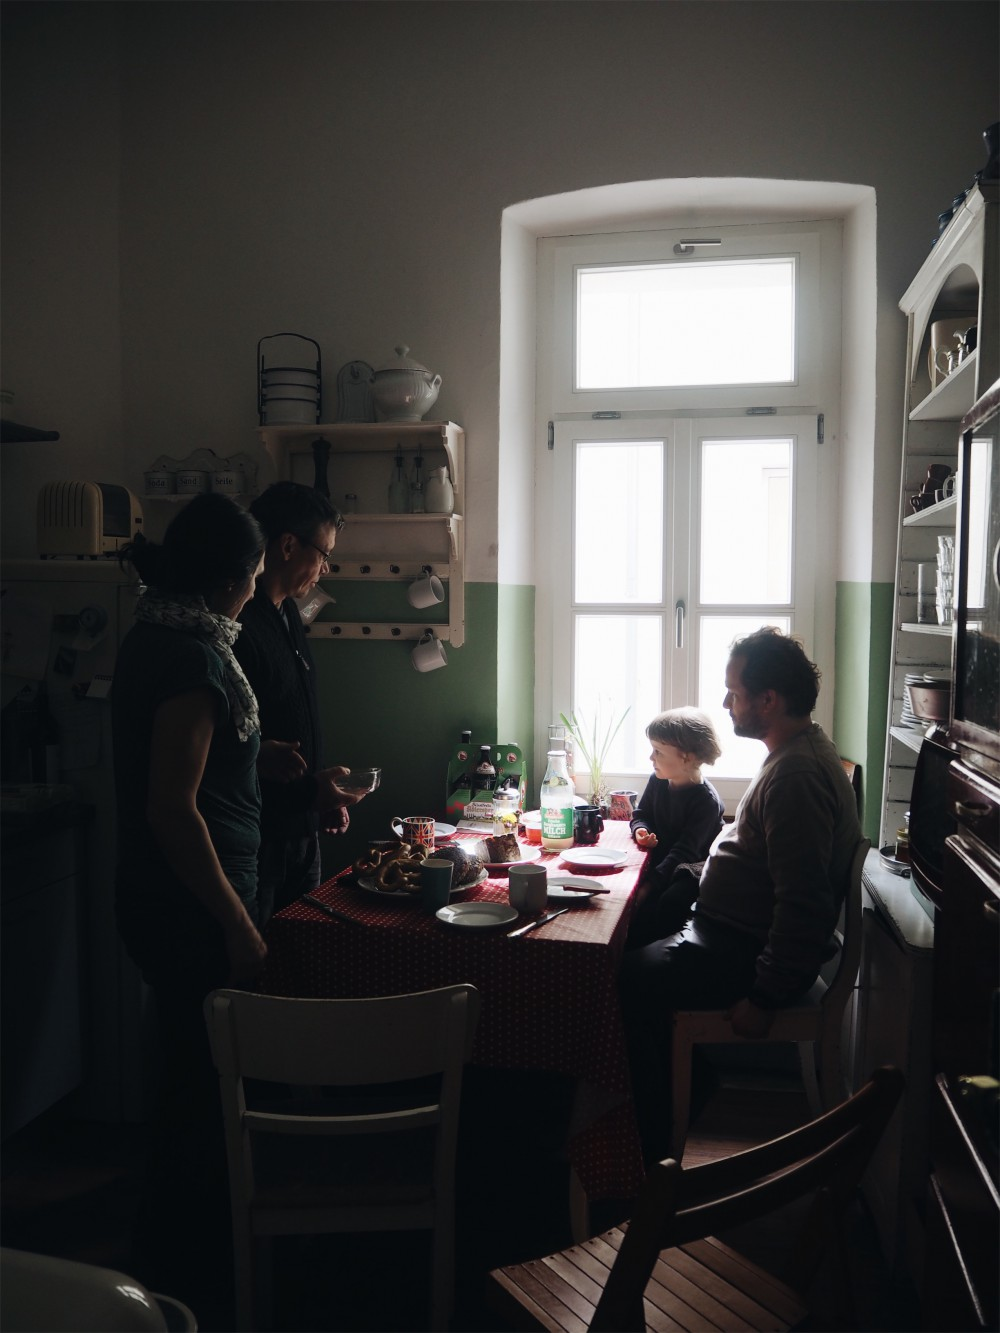 evafedeveka_photographer_photography_kitchen_window_family_light_vermeer